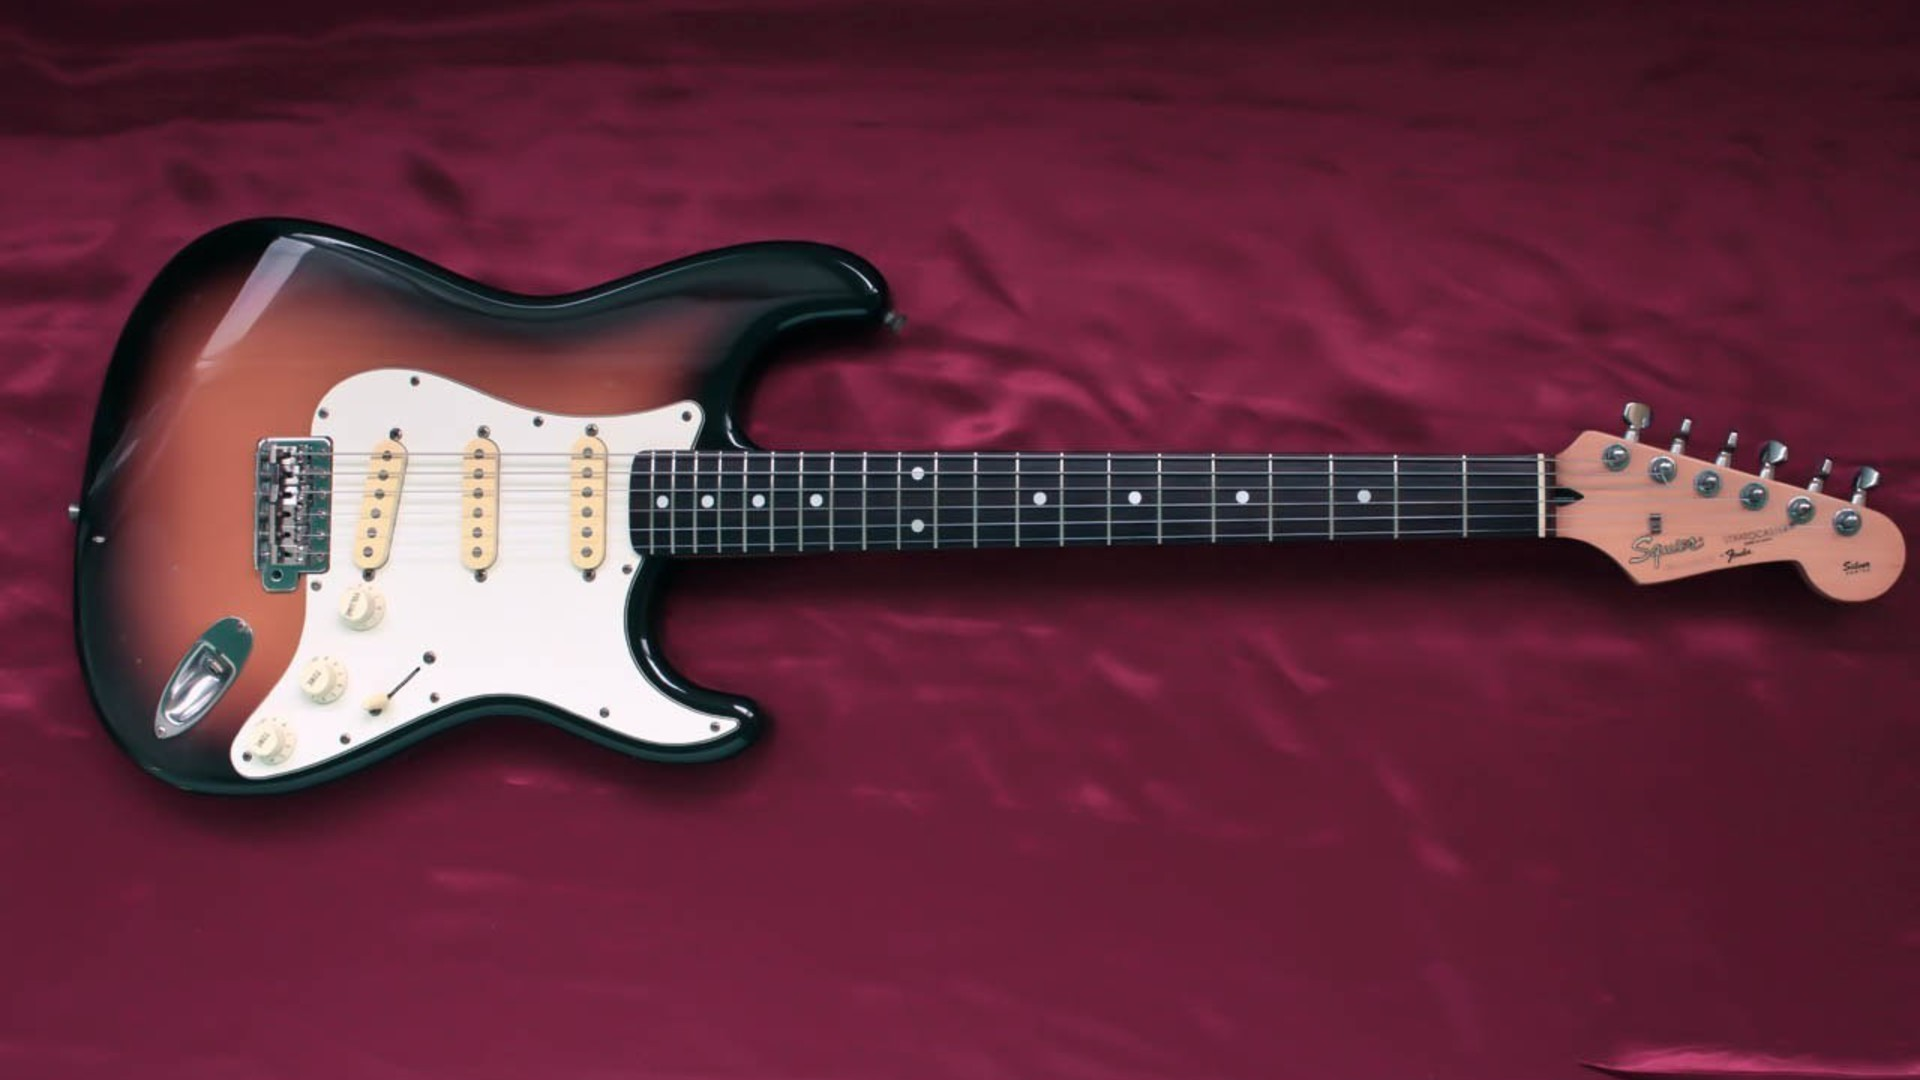 Fender Guitar Wallpaper Related Keywords amp Suggestions 1920x1080